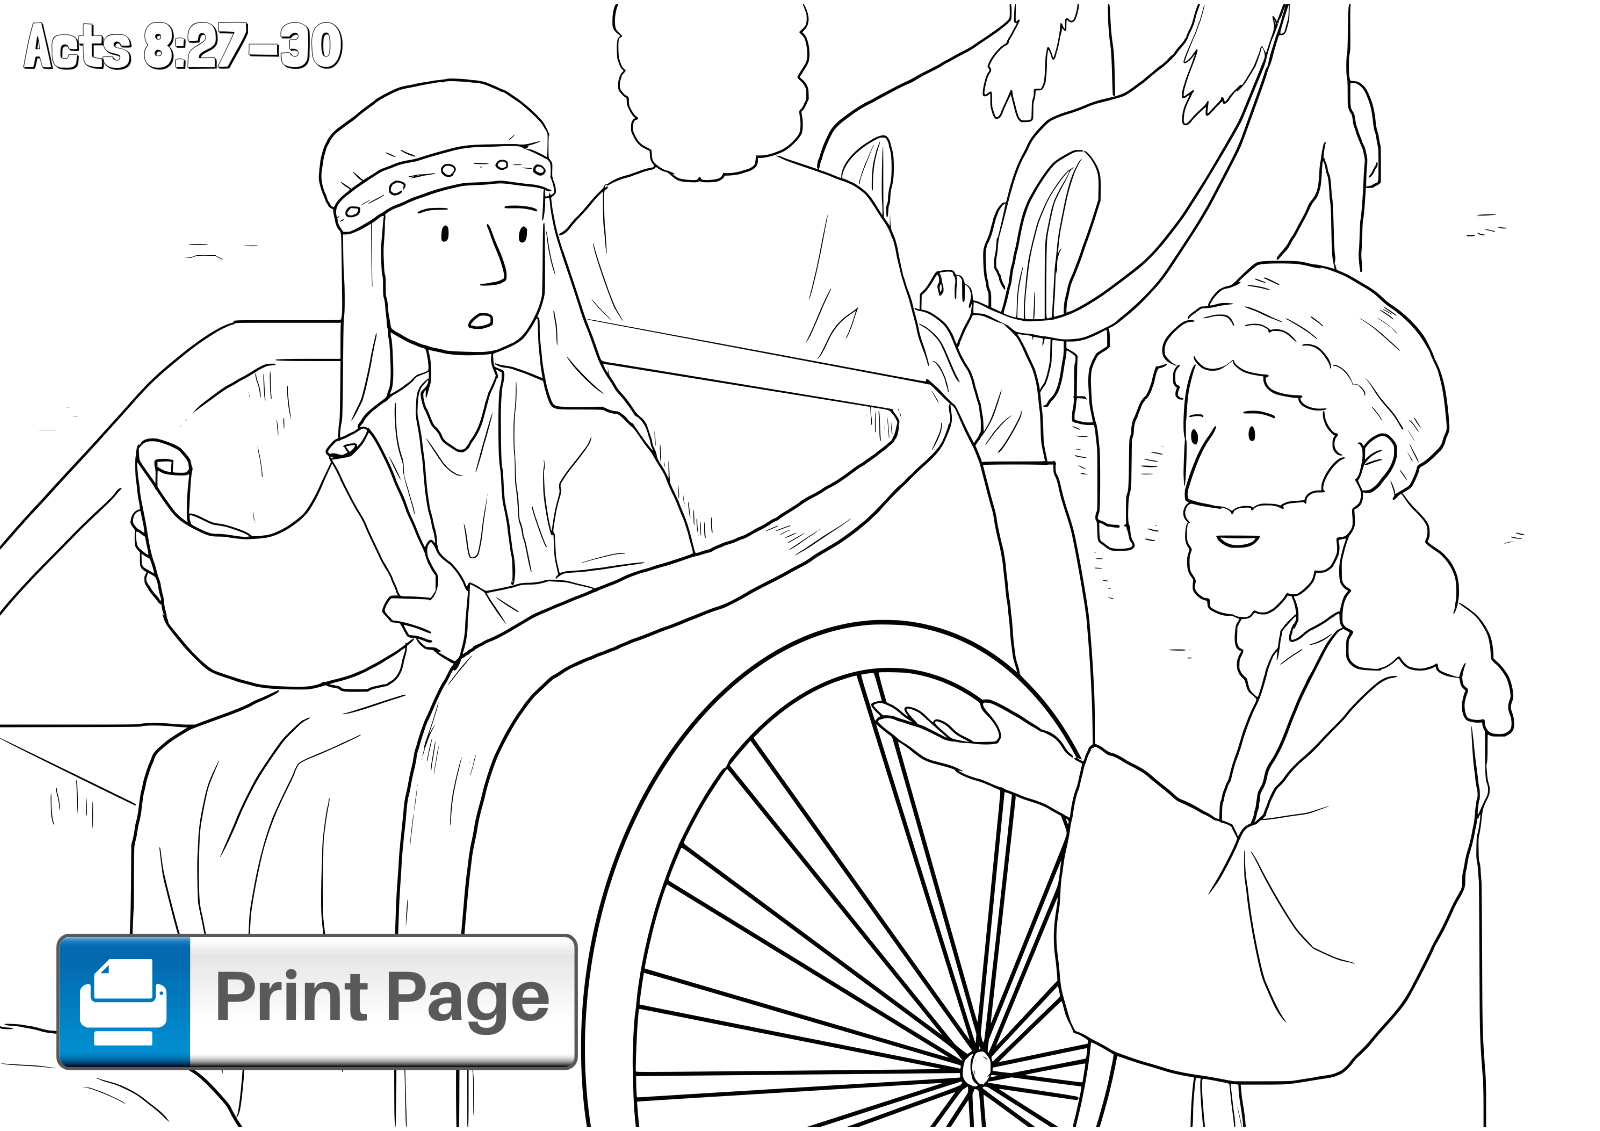 philip and the ethiopian coloring pages